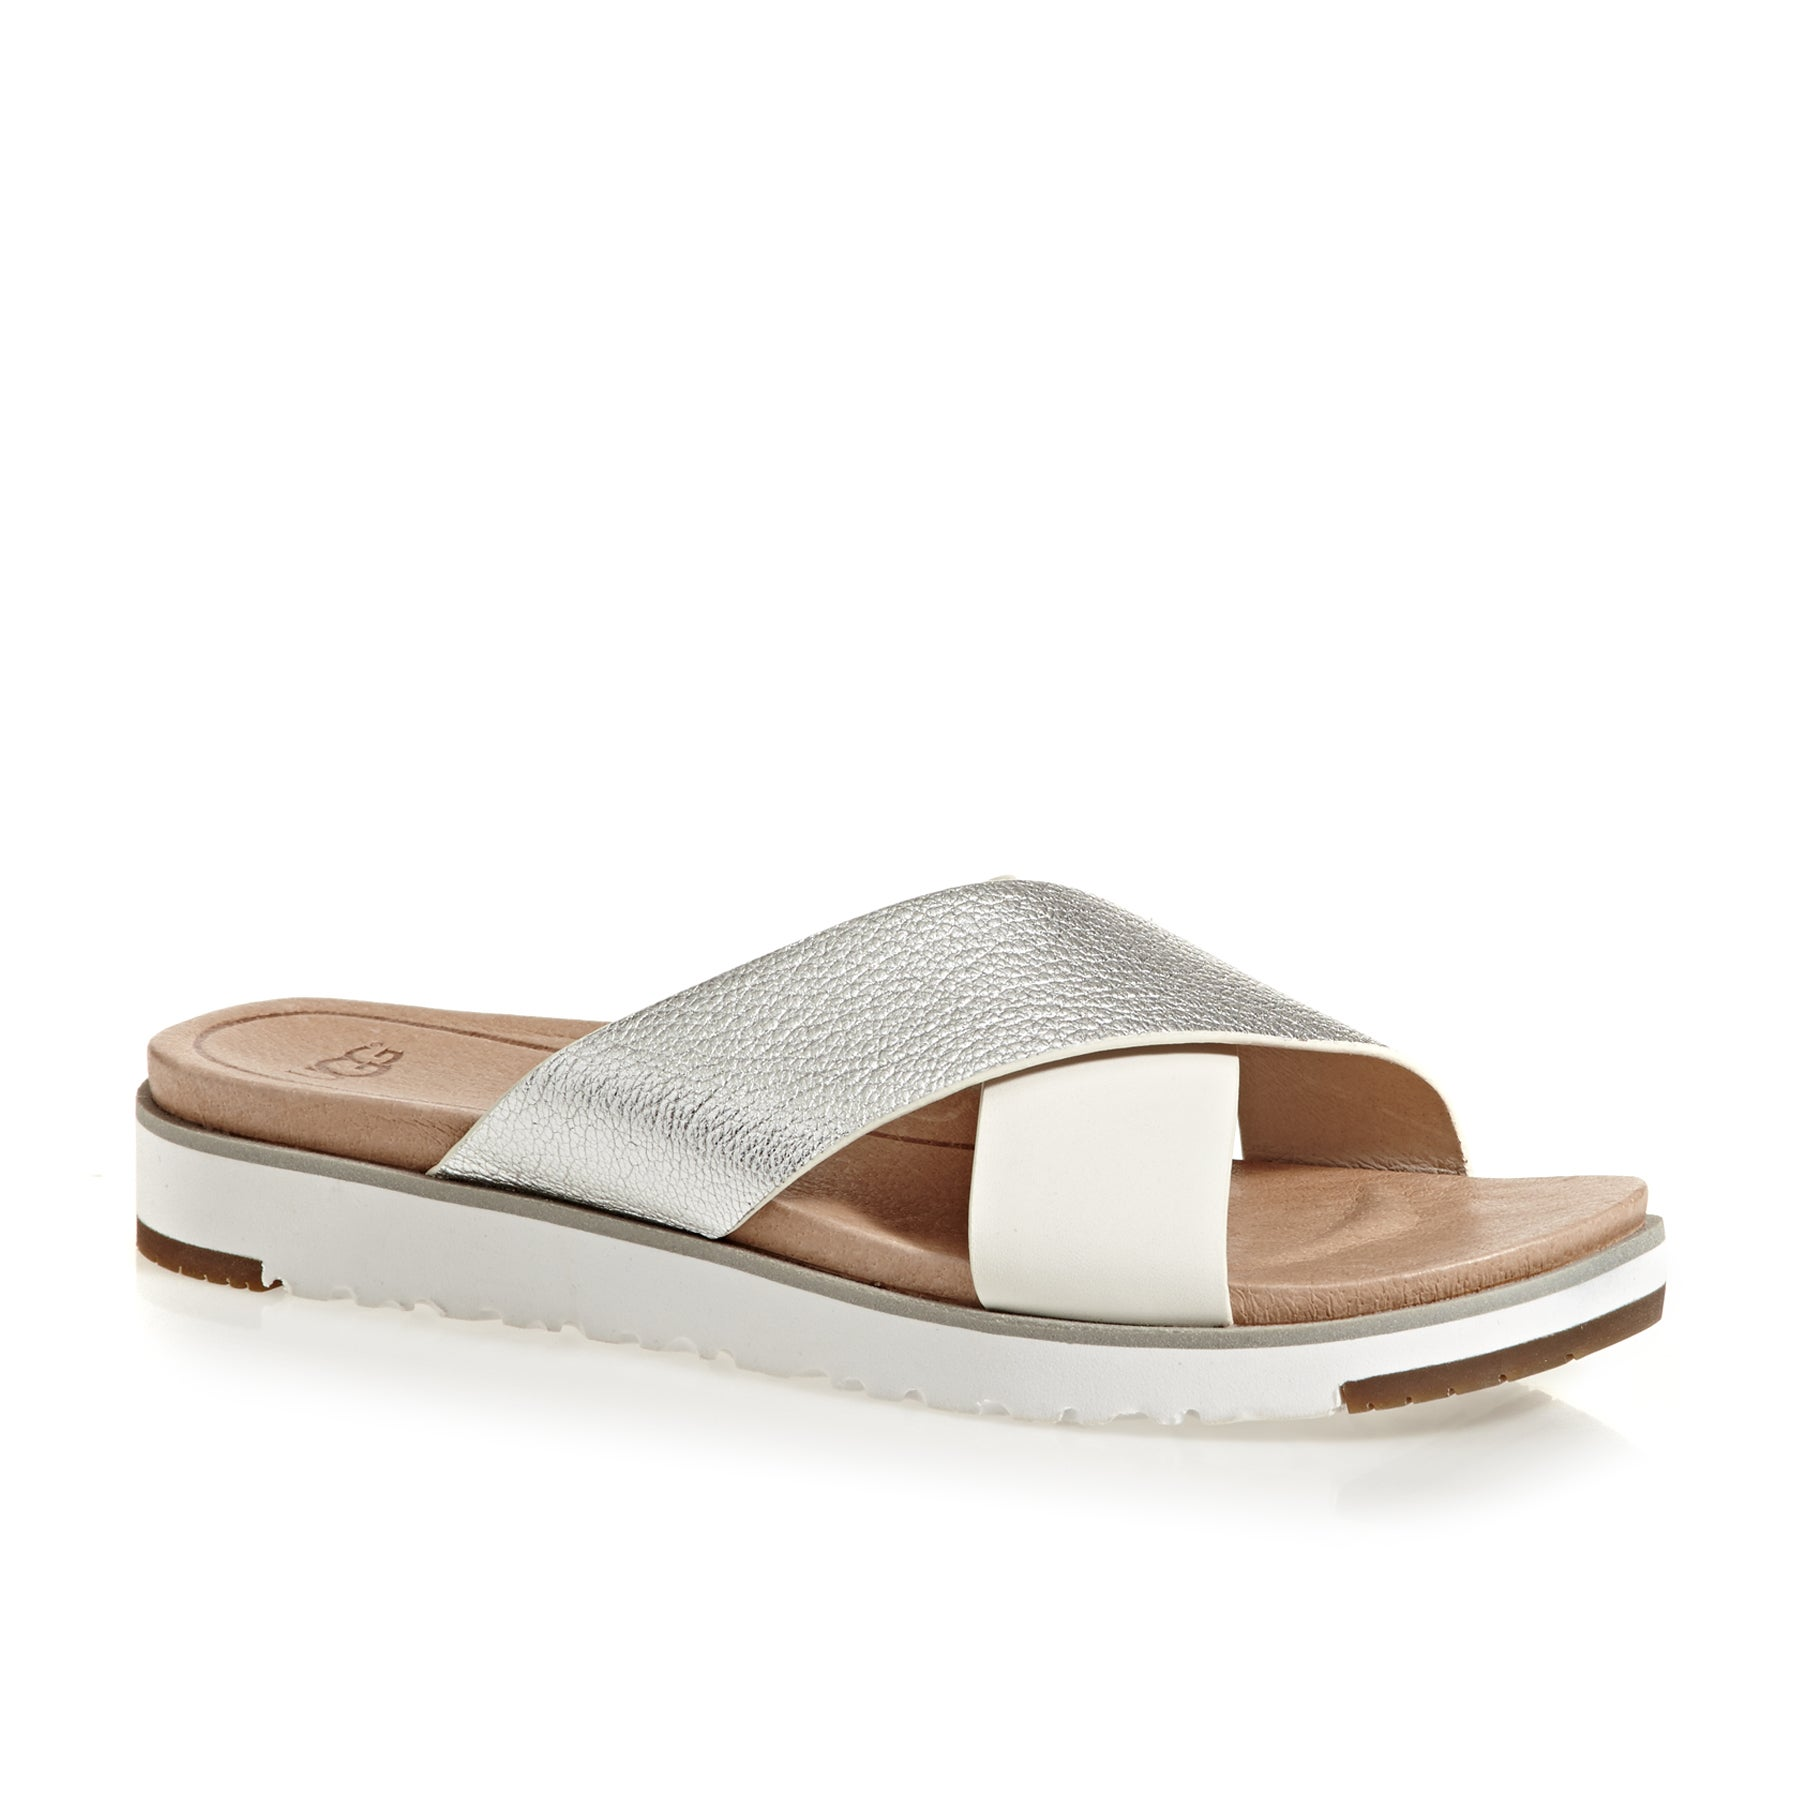 975517e5710 UGG Kari Womens Sandals available from Surfdome